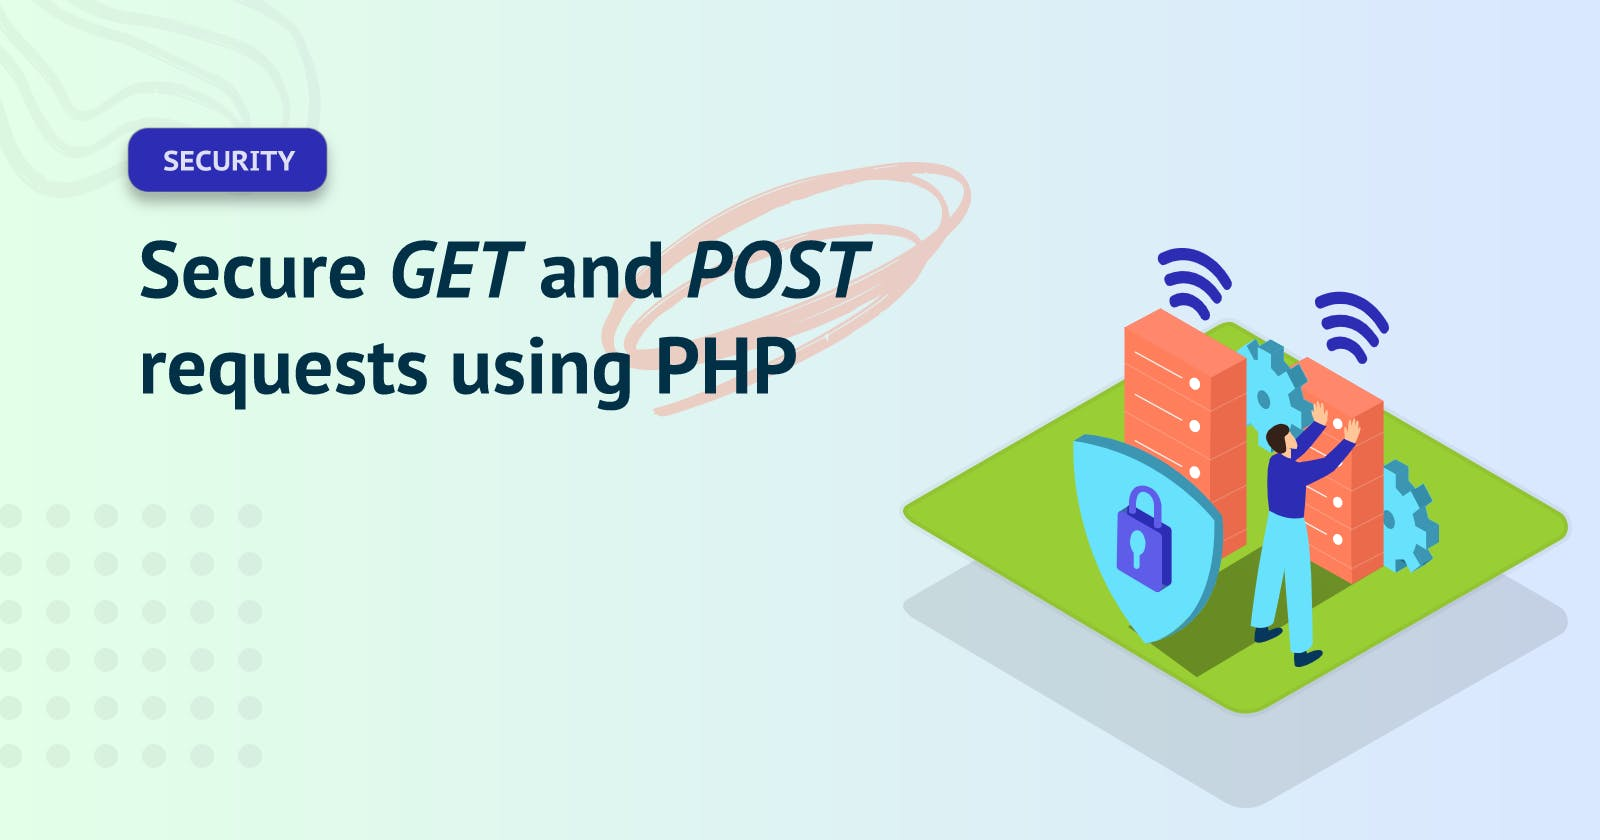 Secure GET and POST requests using PHP